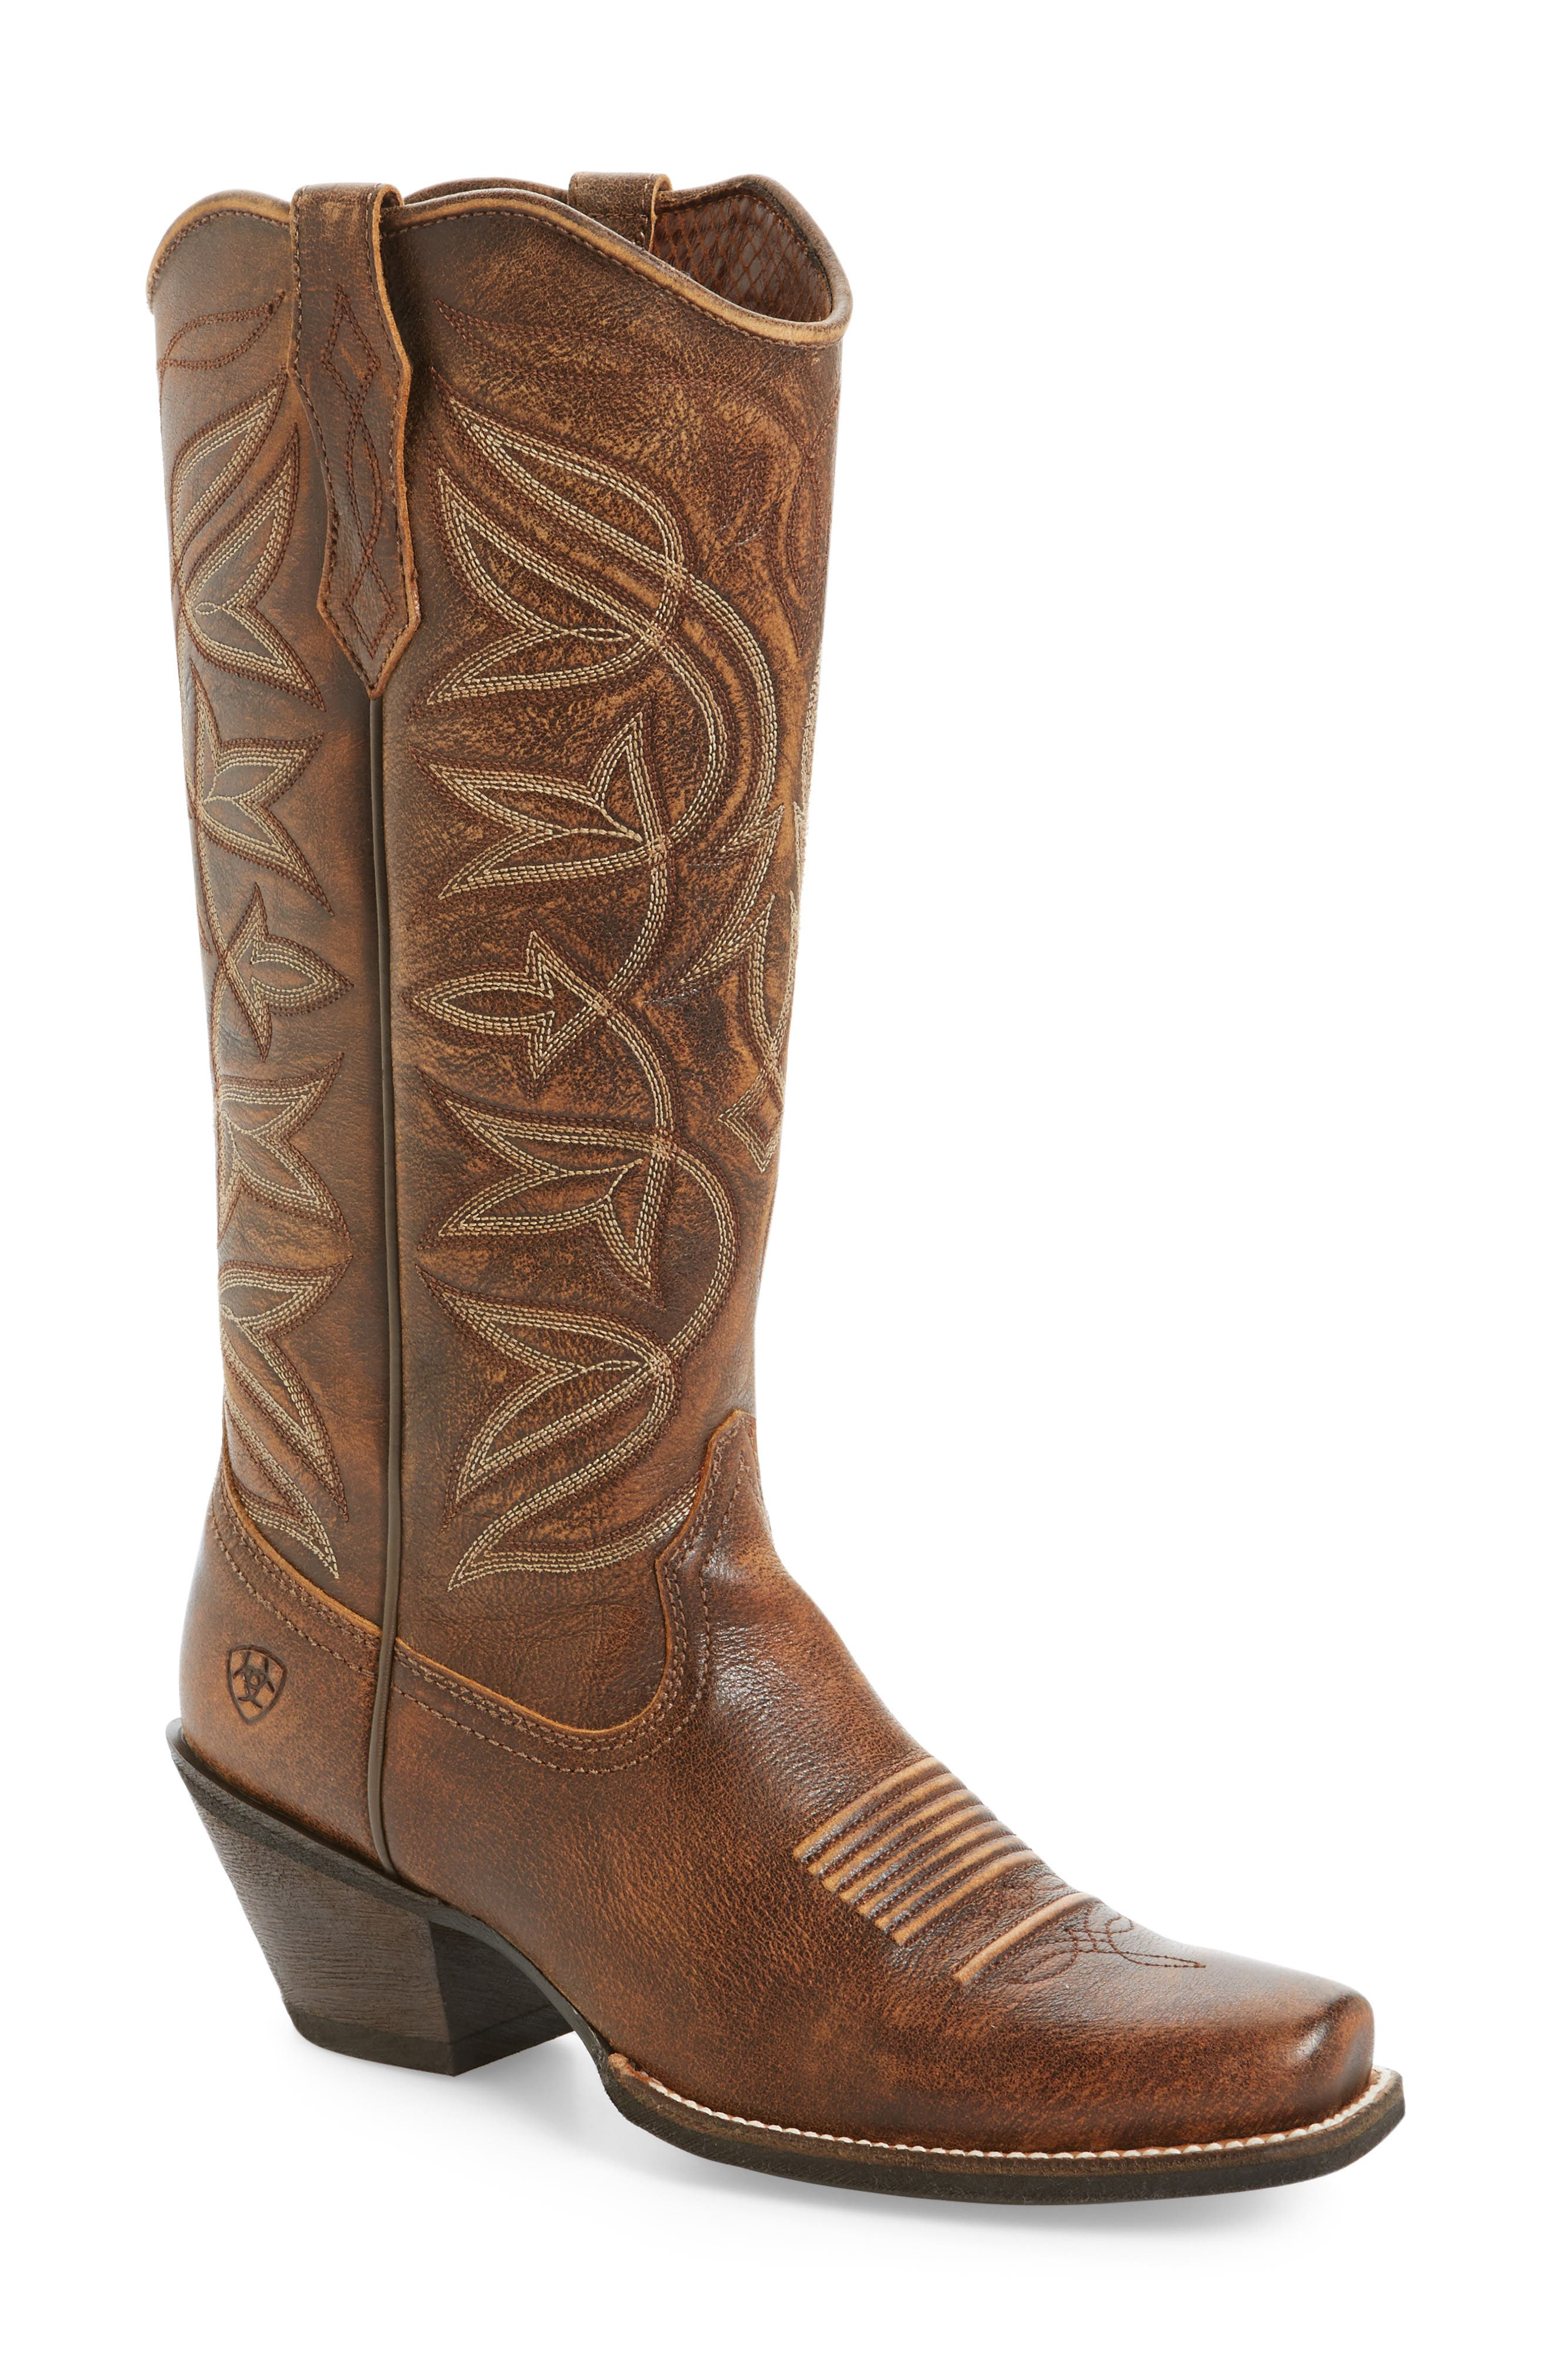 Sheridan Western Boot,                         Main,                         color, Vintage Bomber Leather